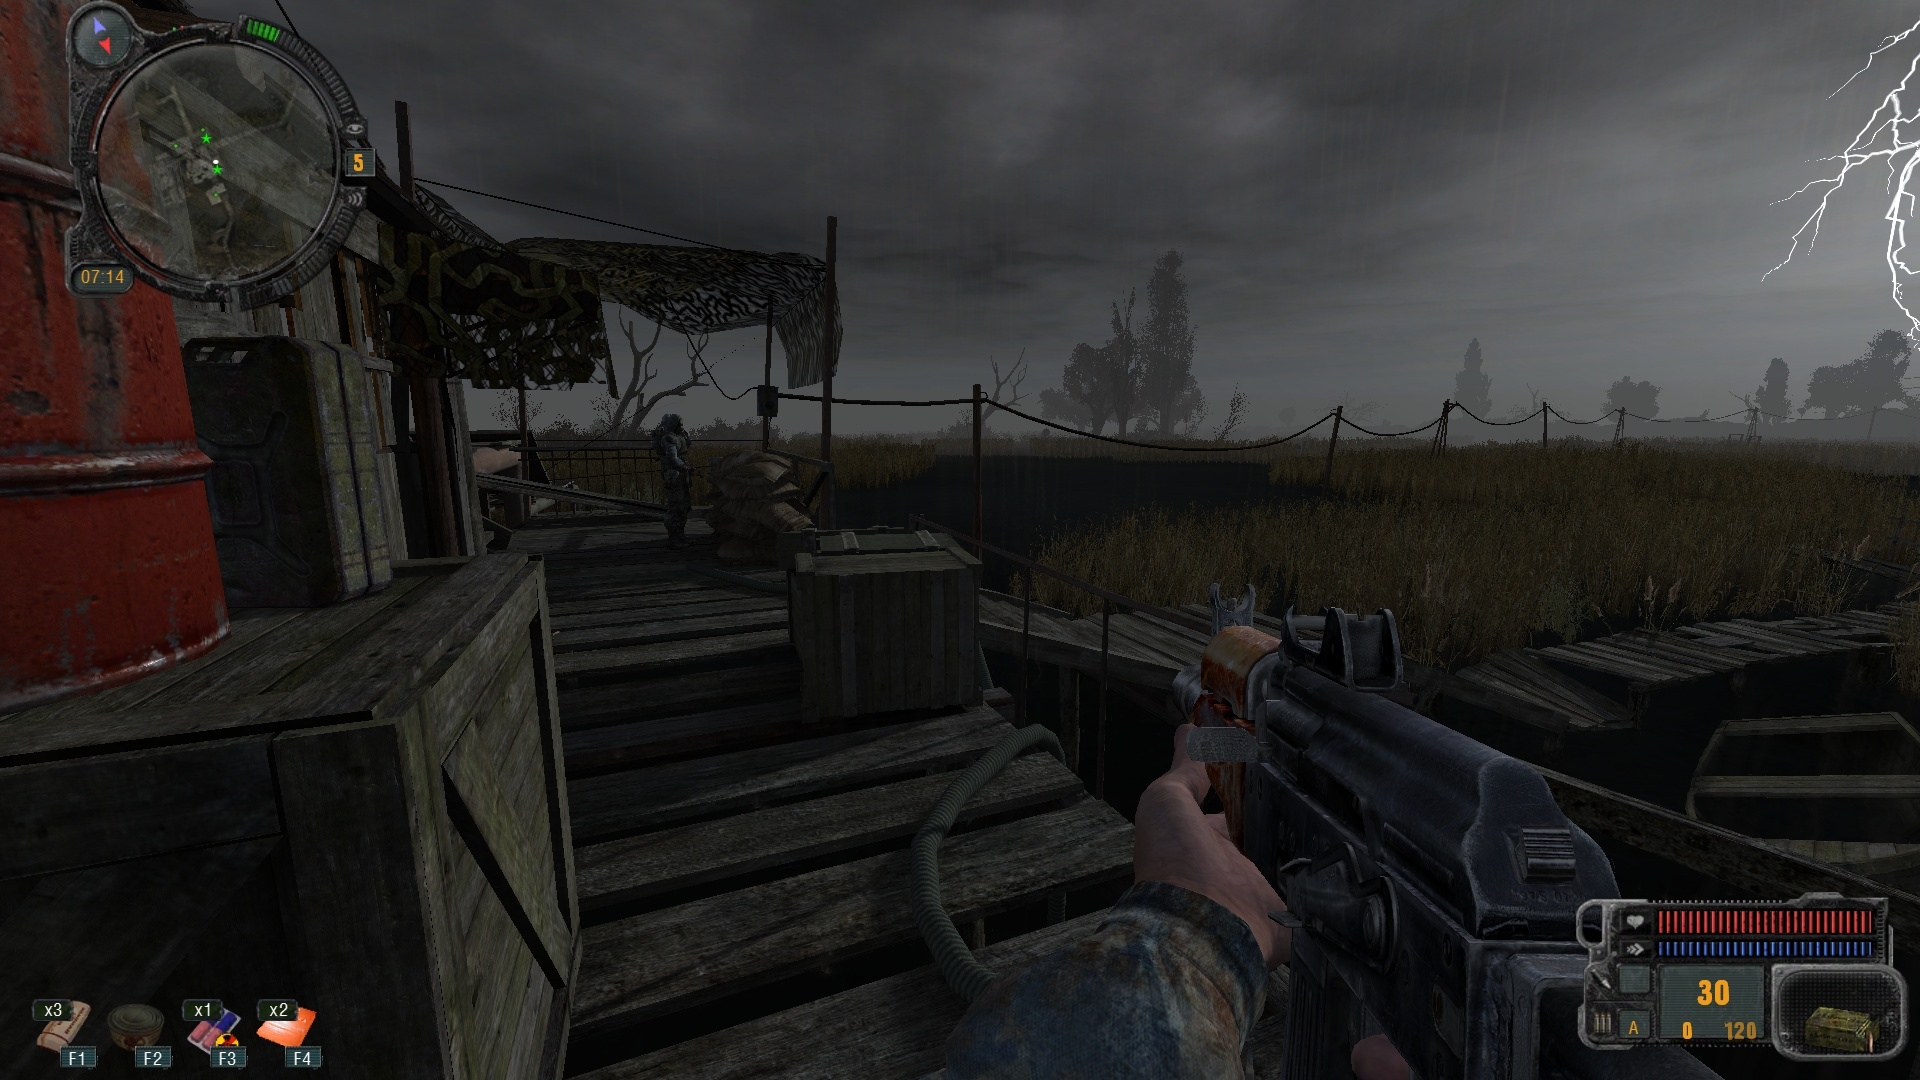 CoP HUD for CoC file - S T A L K E R : Call of Chernobyl mod